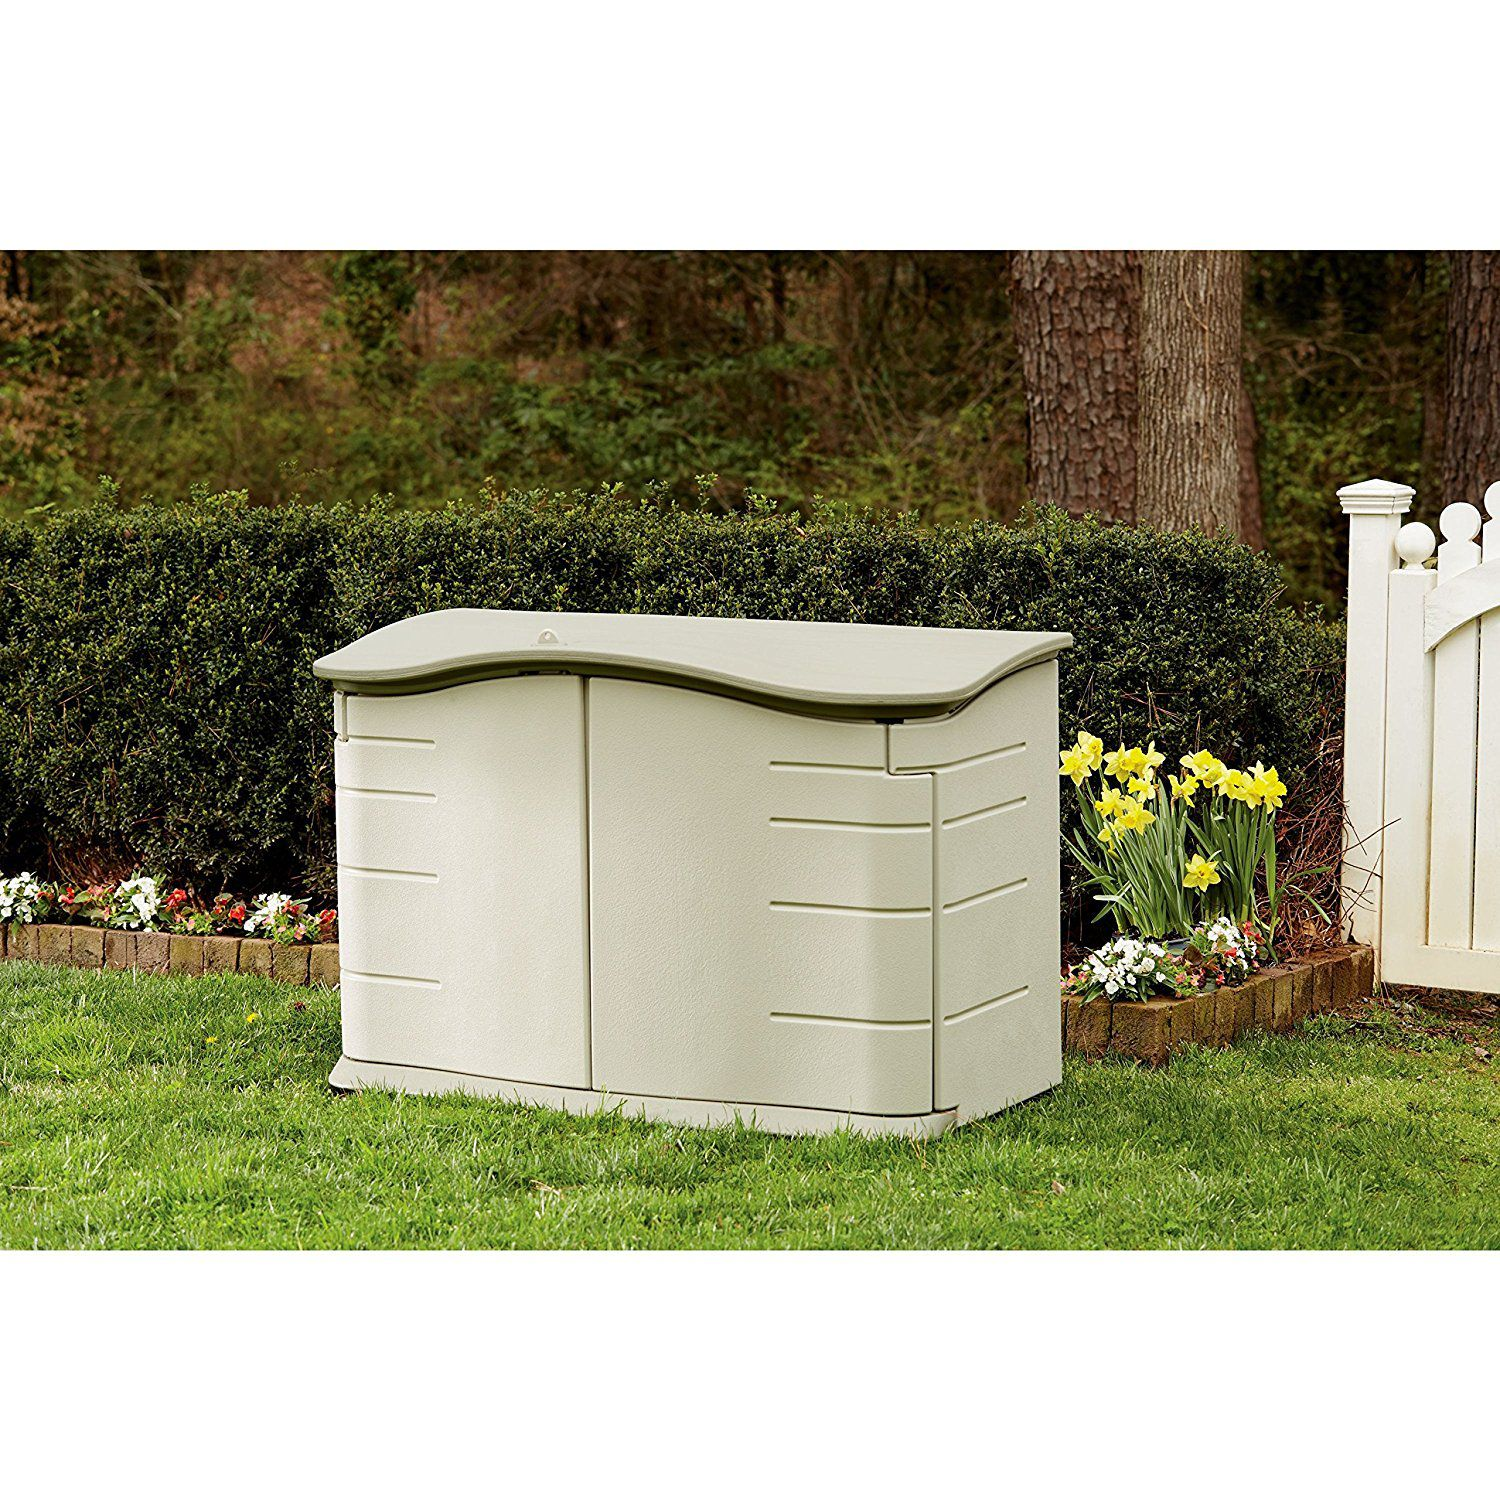 1446 Best Potager Garden Sheds Rooftop Gardens: The 6 Best Outdoor Storage Sheds Of 2019